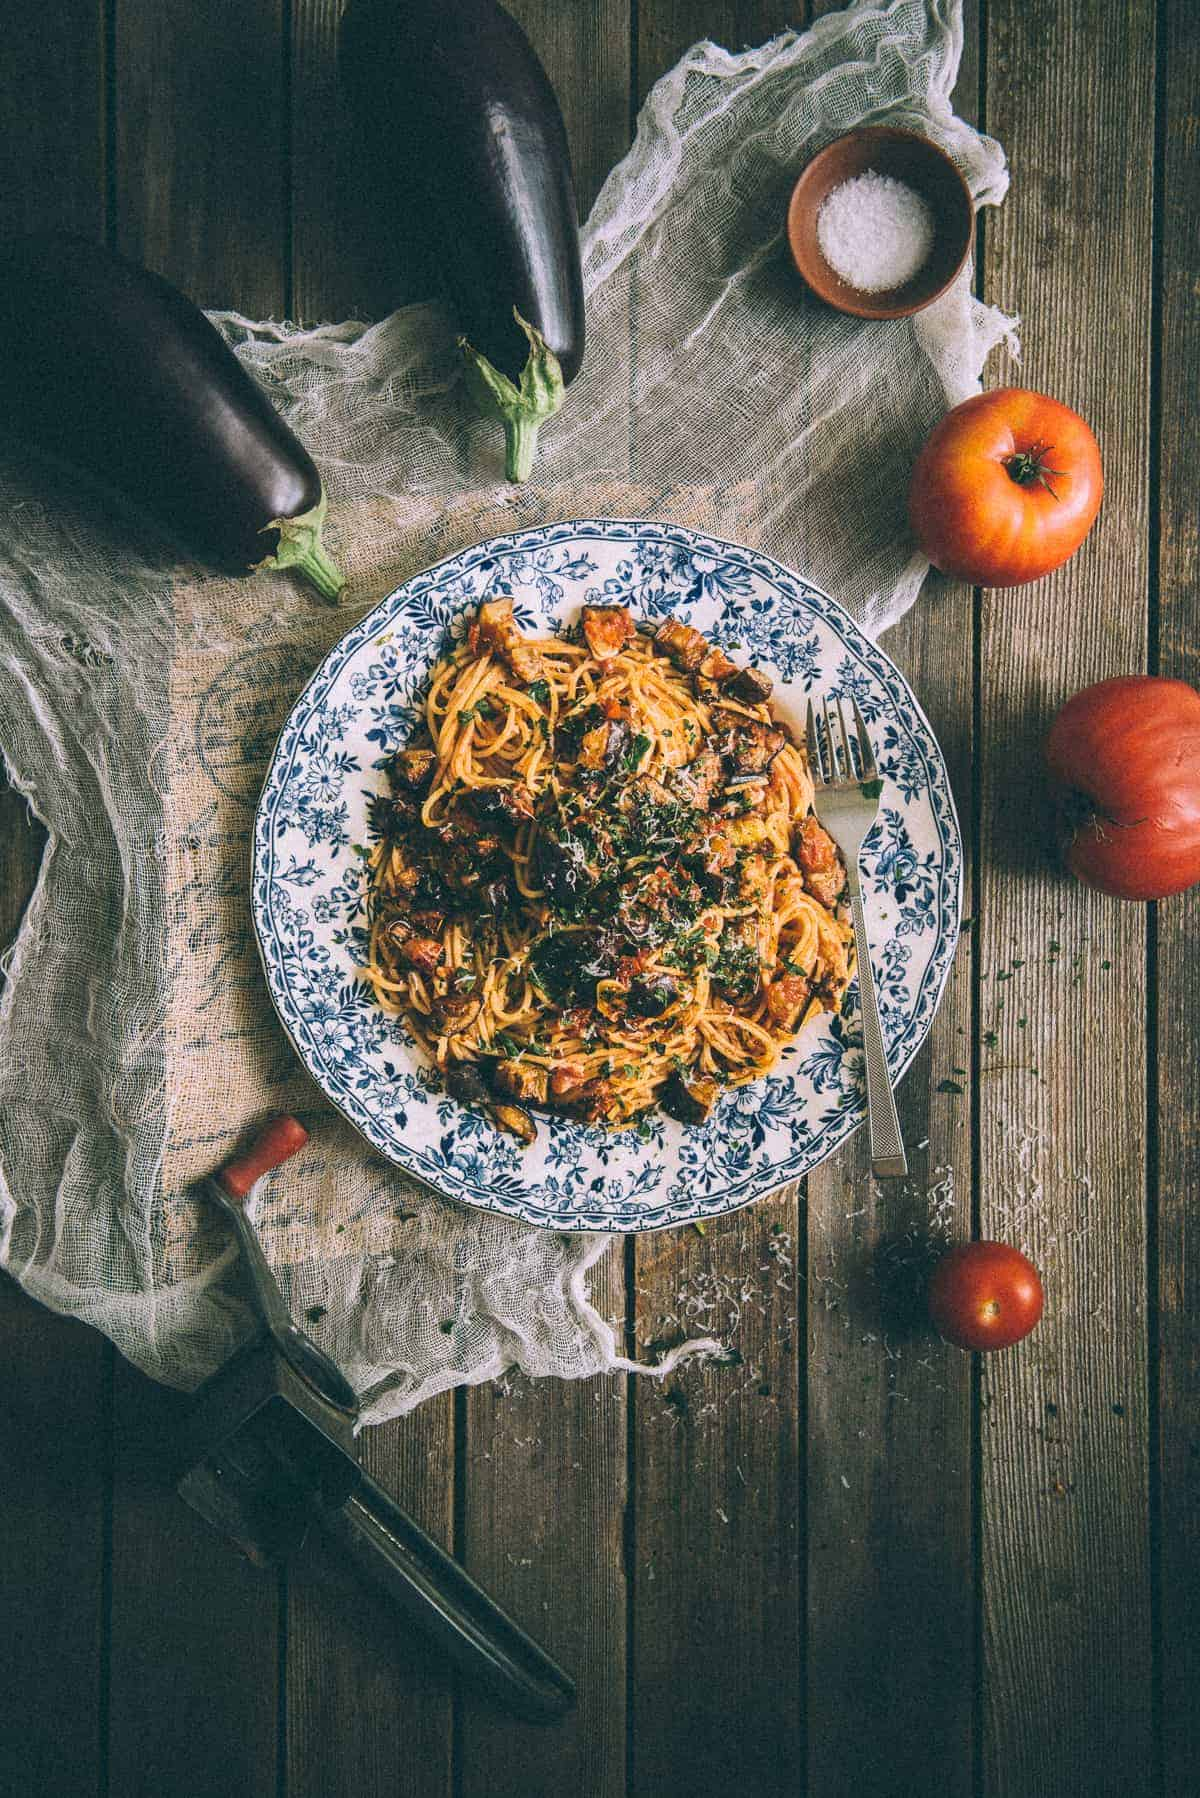 pasta all norma made with eggplants and tomatoes served on a plate